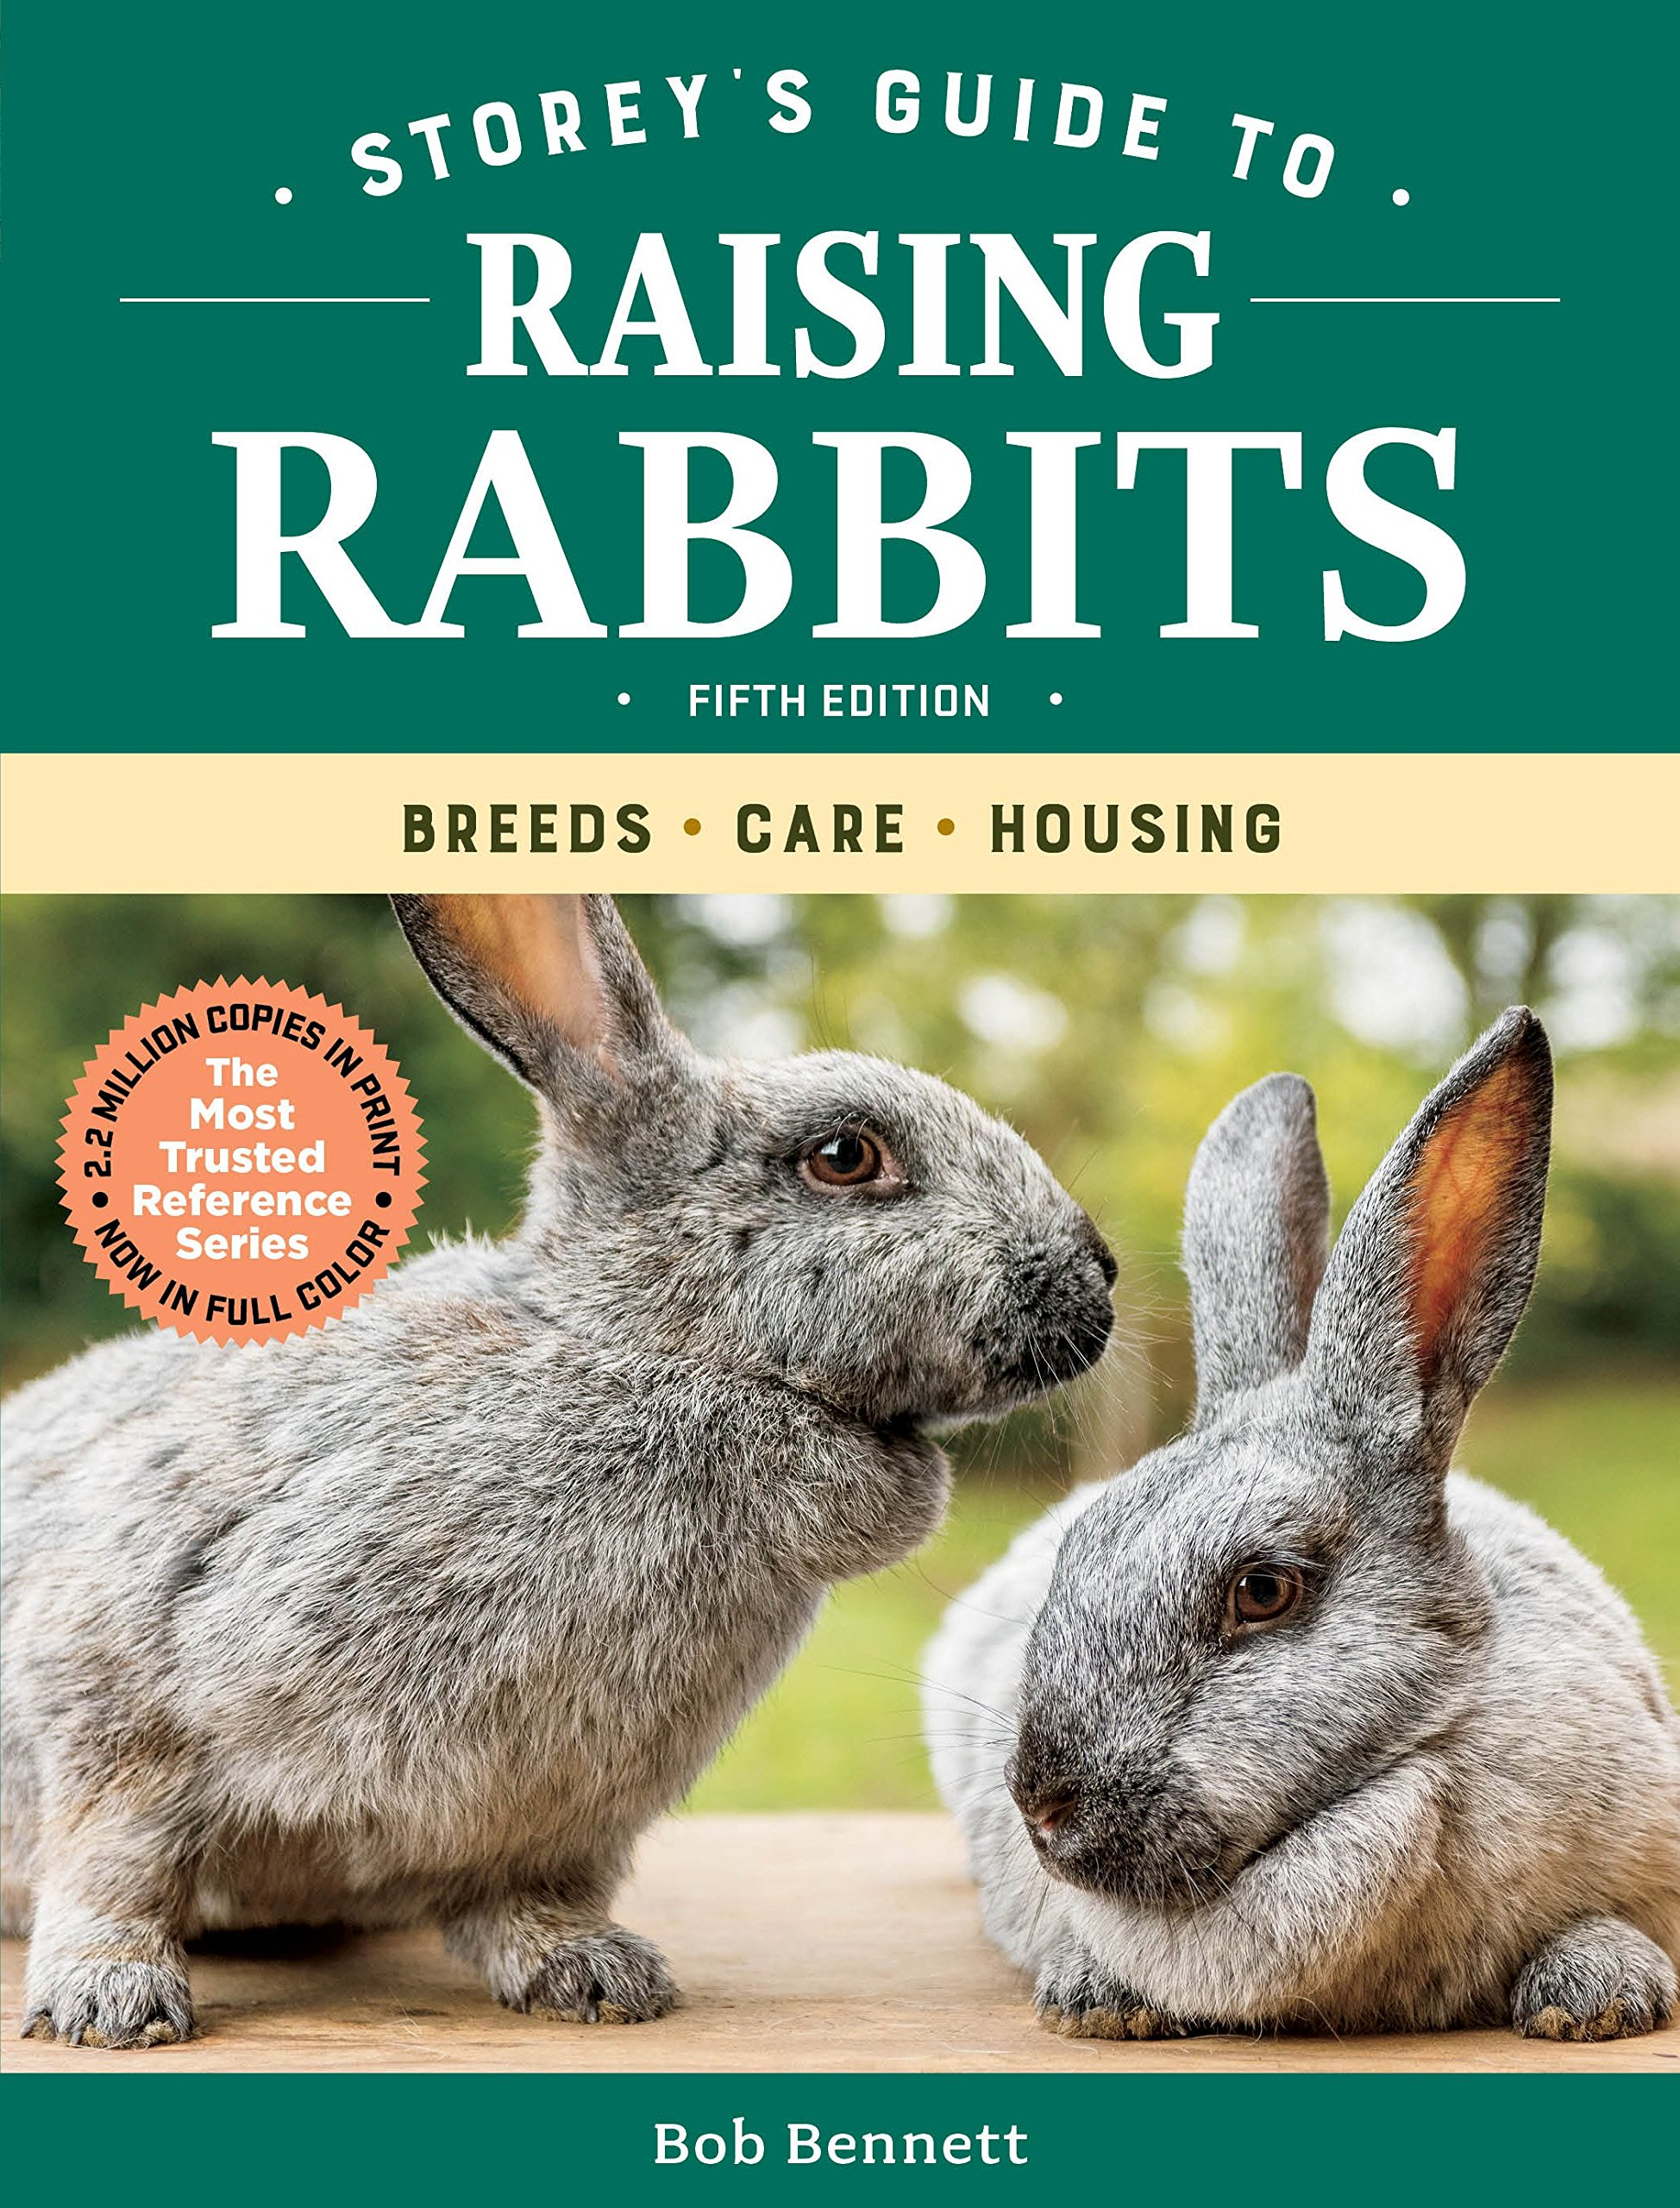 Storey's Guide to Raising Rabbits, 5th Edition: Breeds, Care